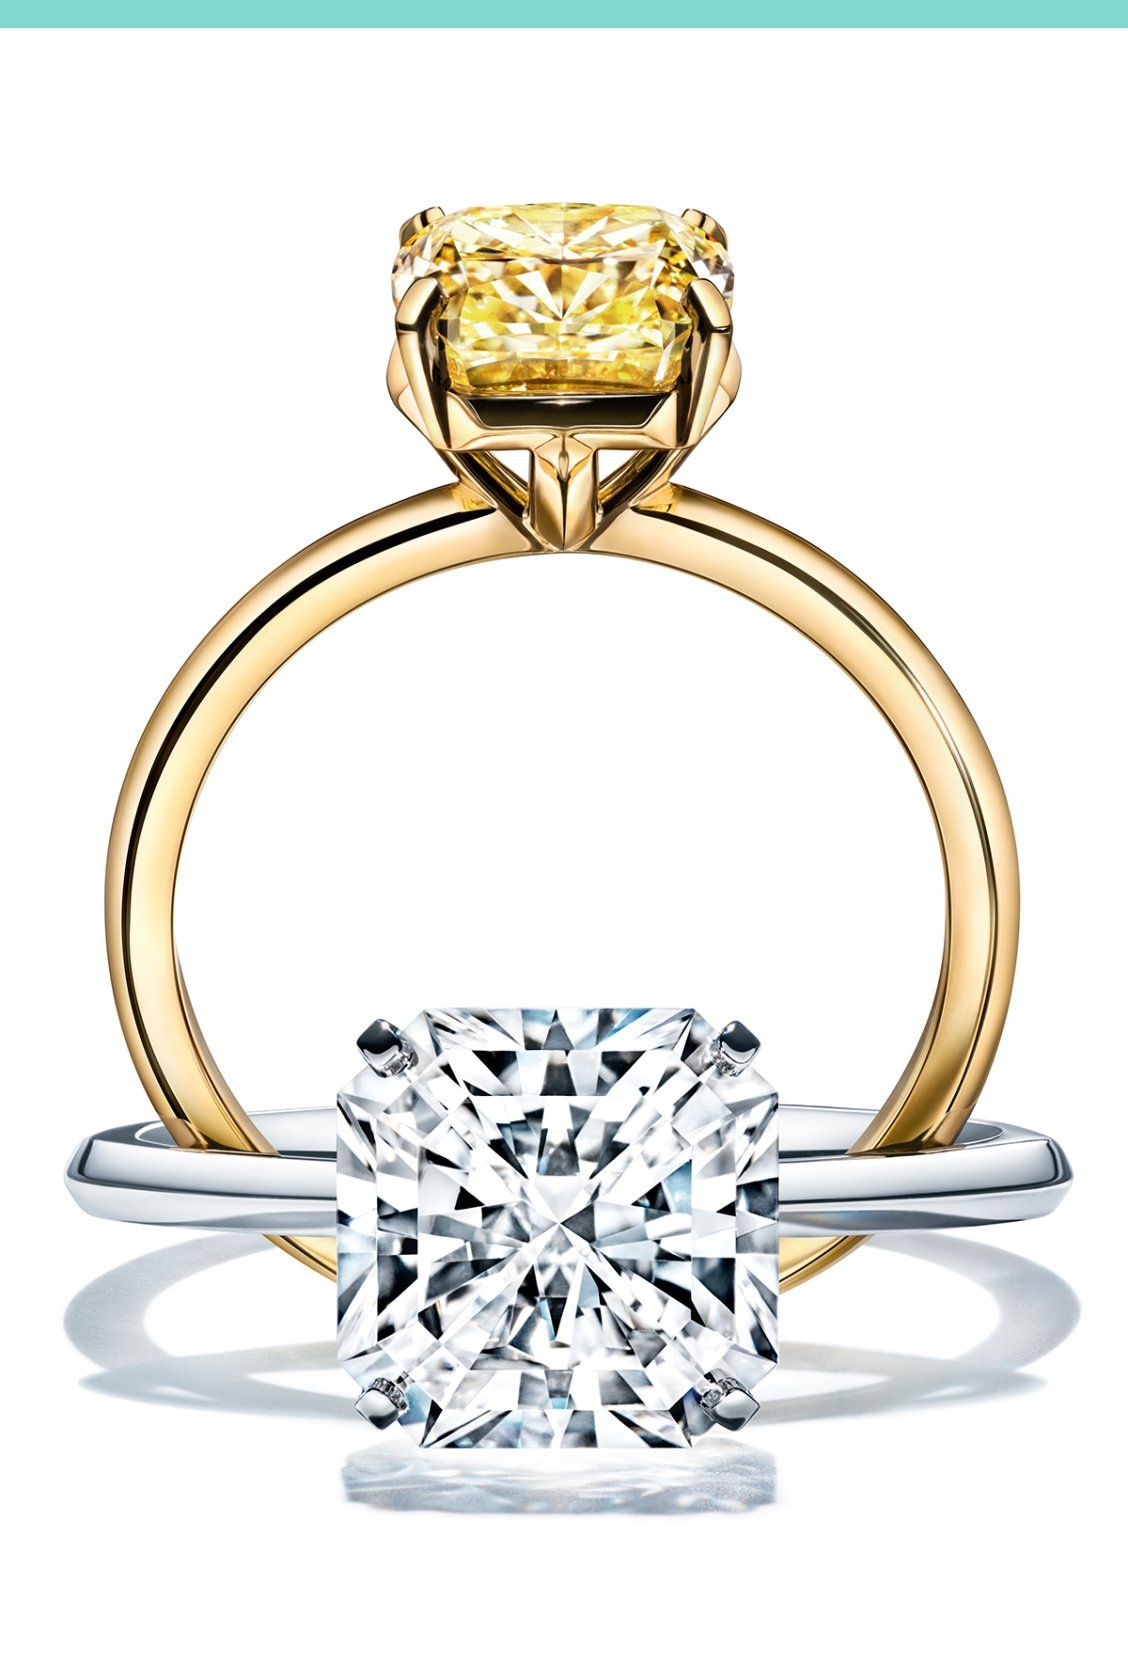 6de9a3032824b1 The new Tiffany True is available in platinum with an innovative square  mixed True-cut white diamond or in 18k gold with a fancy yellow cushion  modified ...